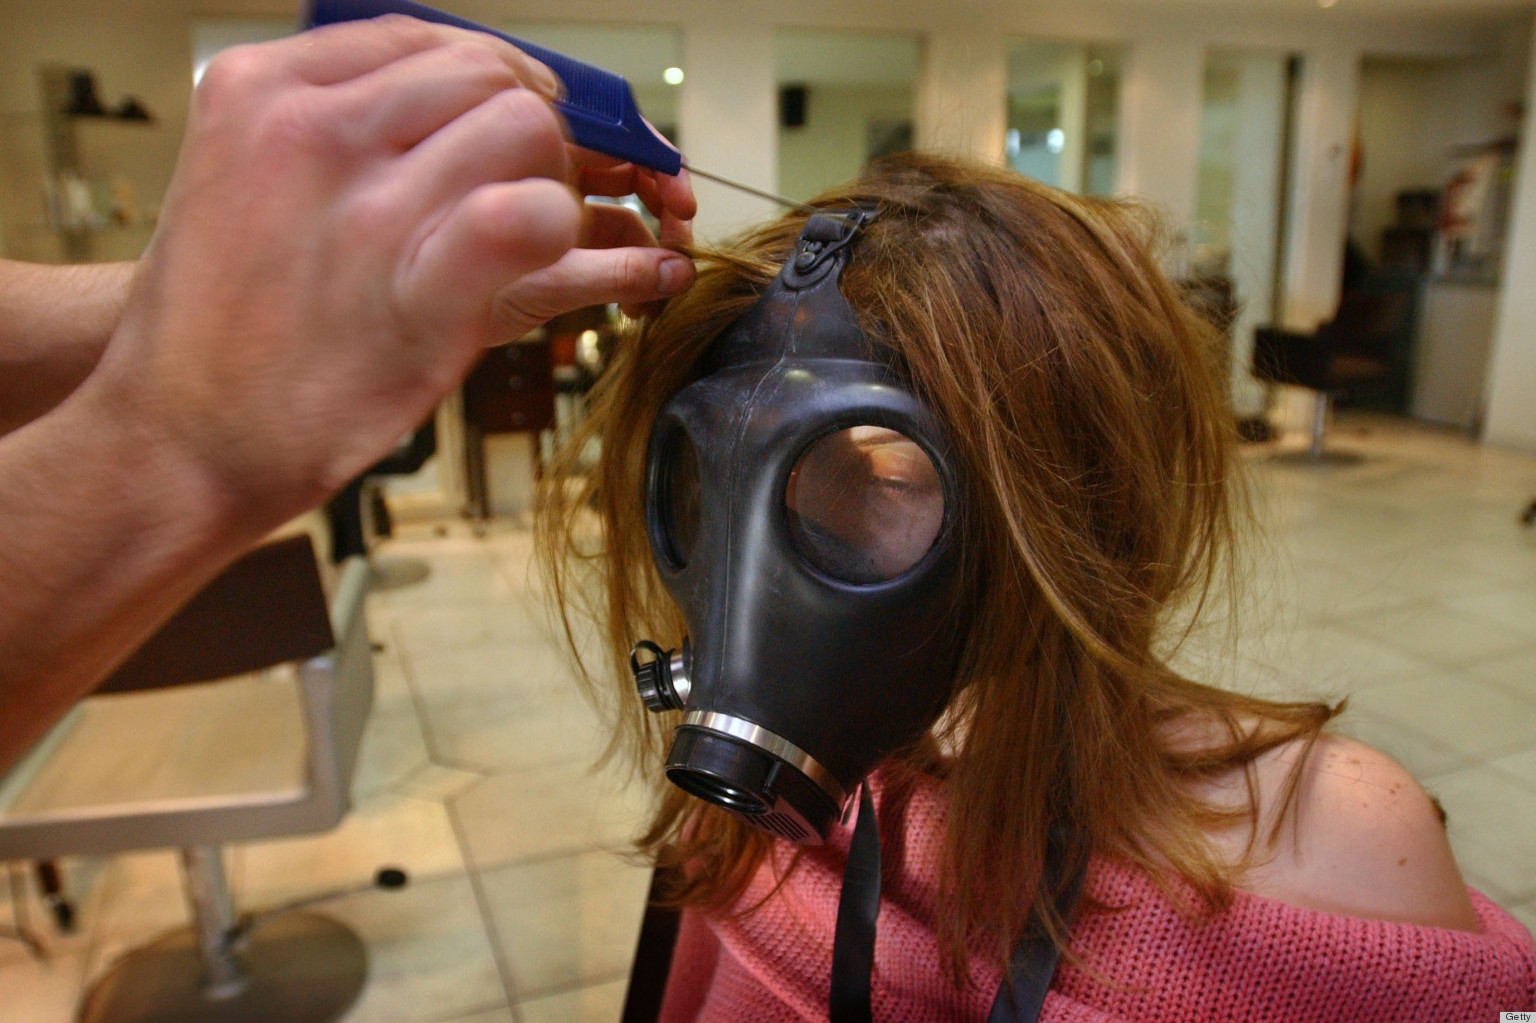 Hair Salon Hazards 9 Signs You Should Run For The Exit